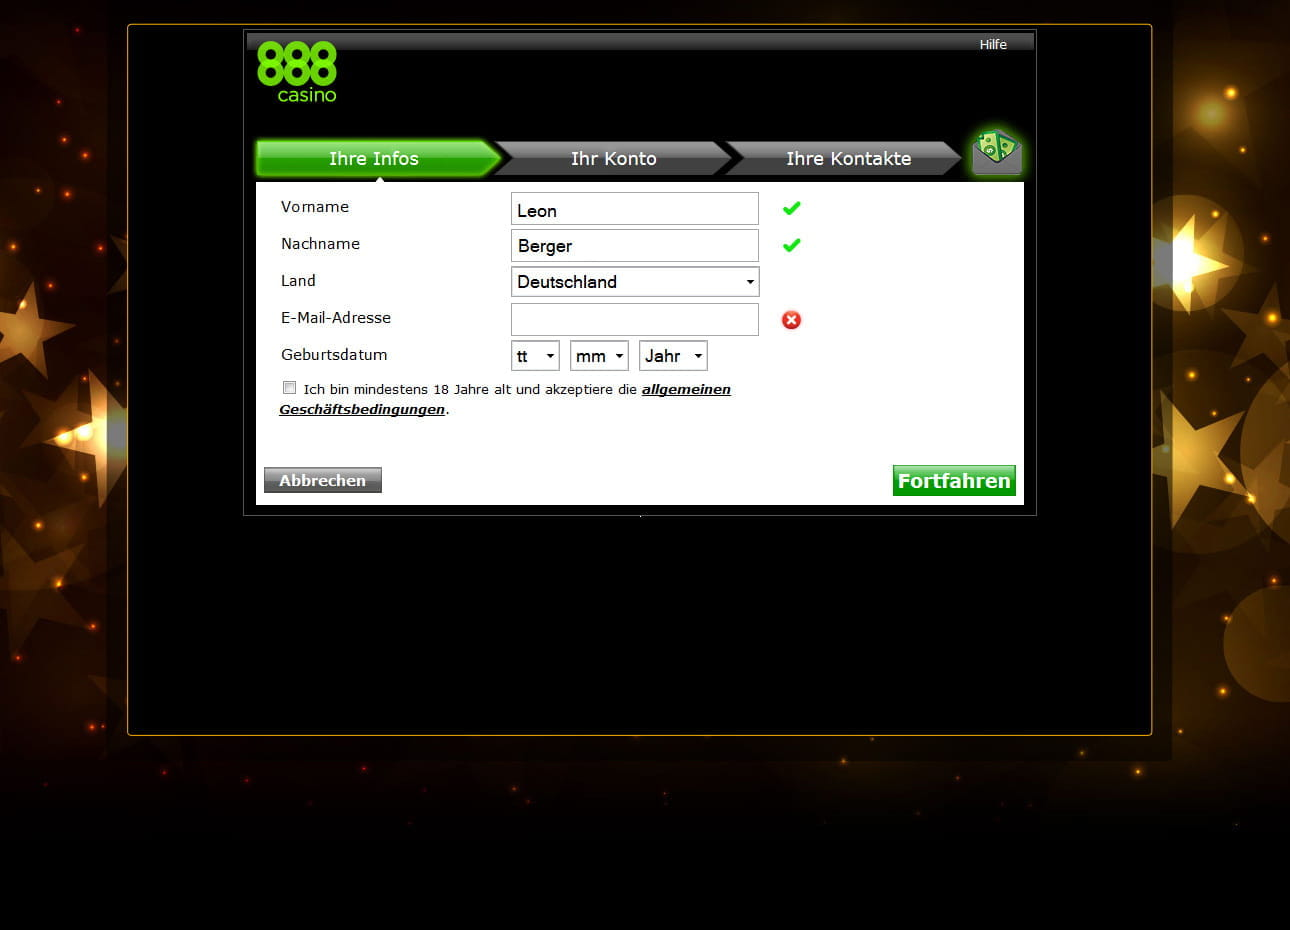 My game partypoker